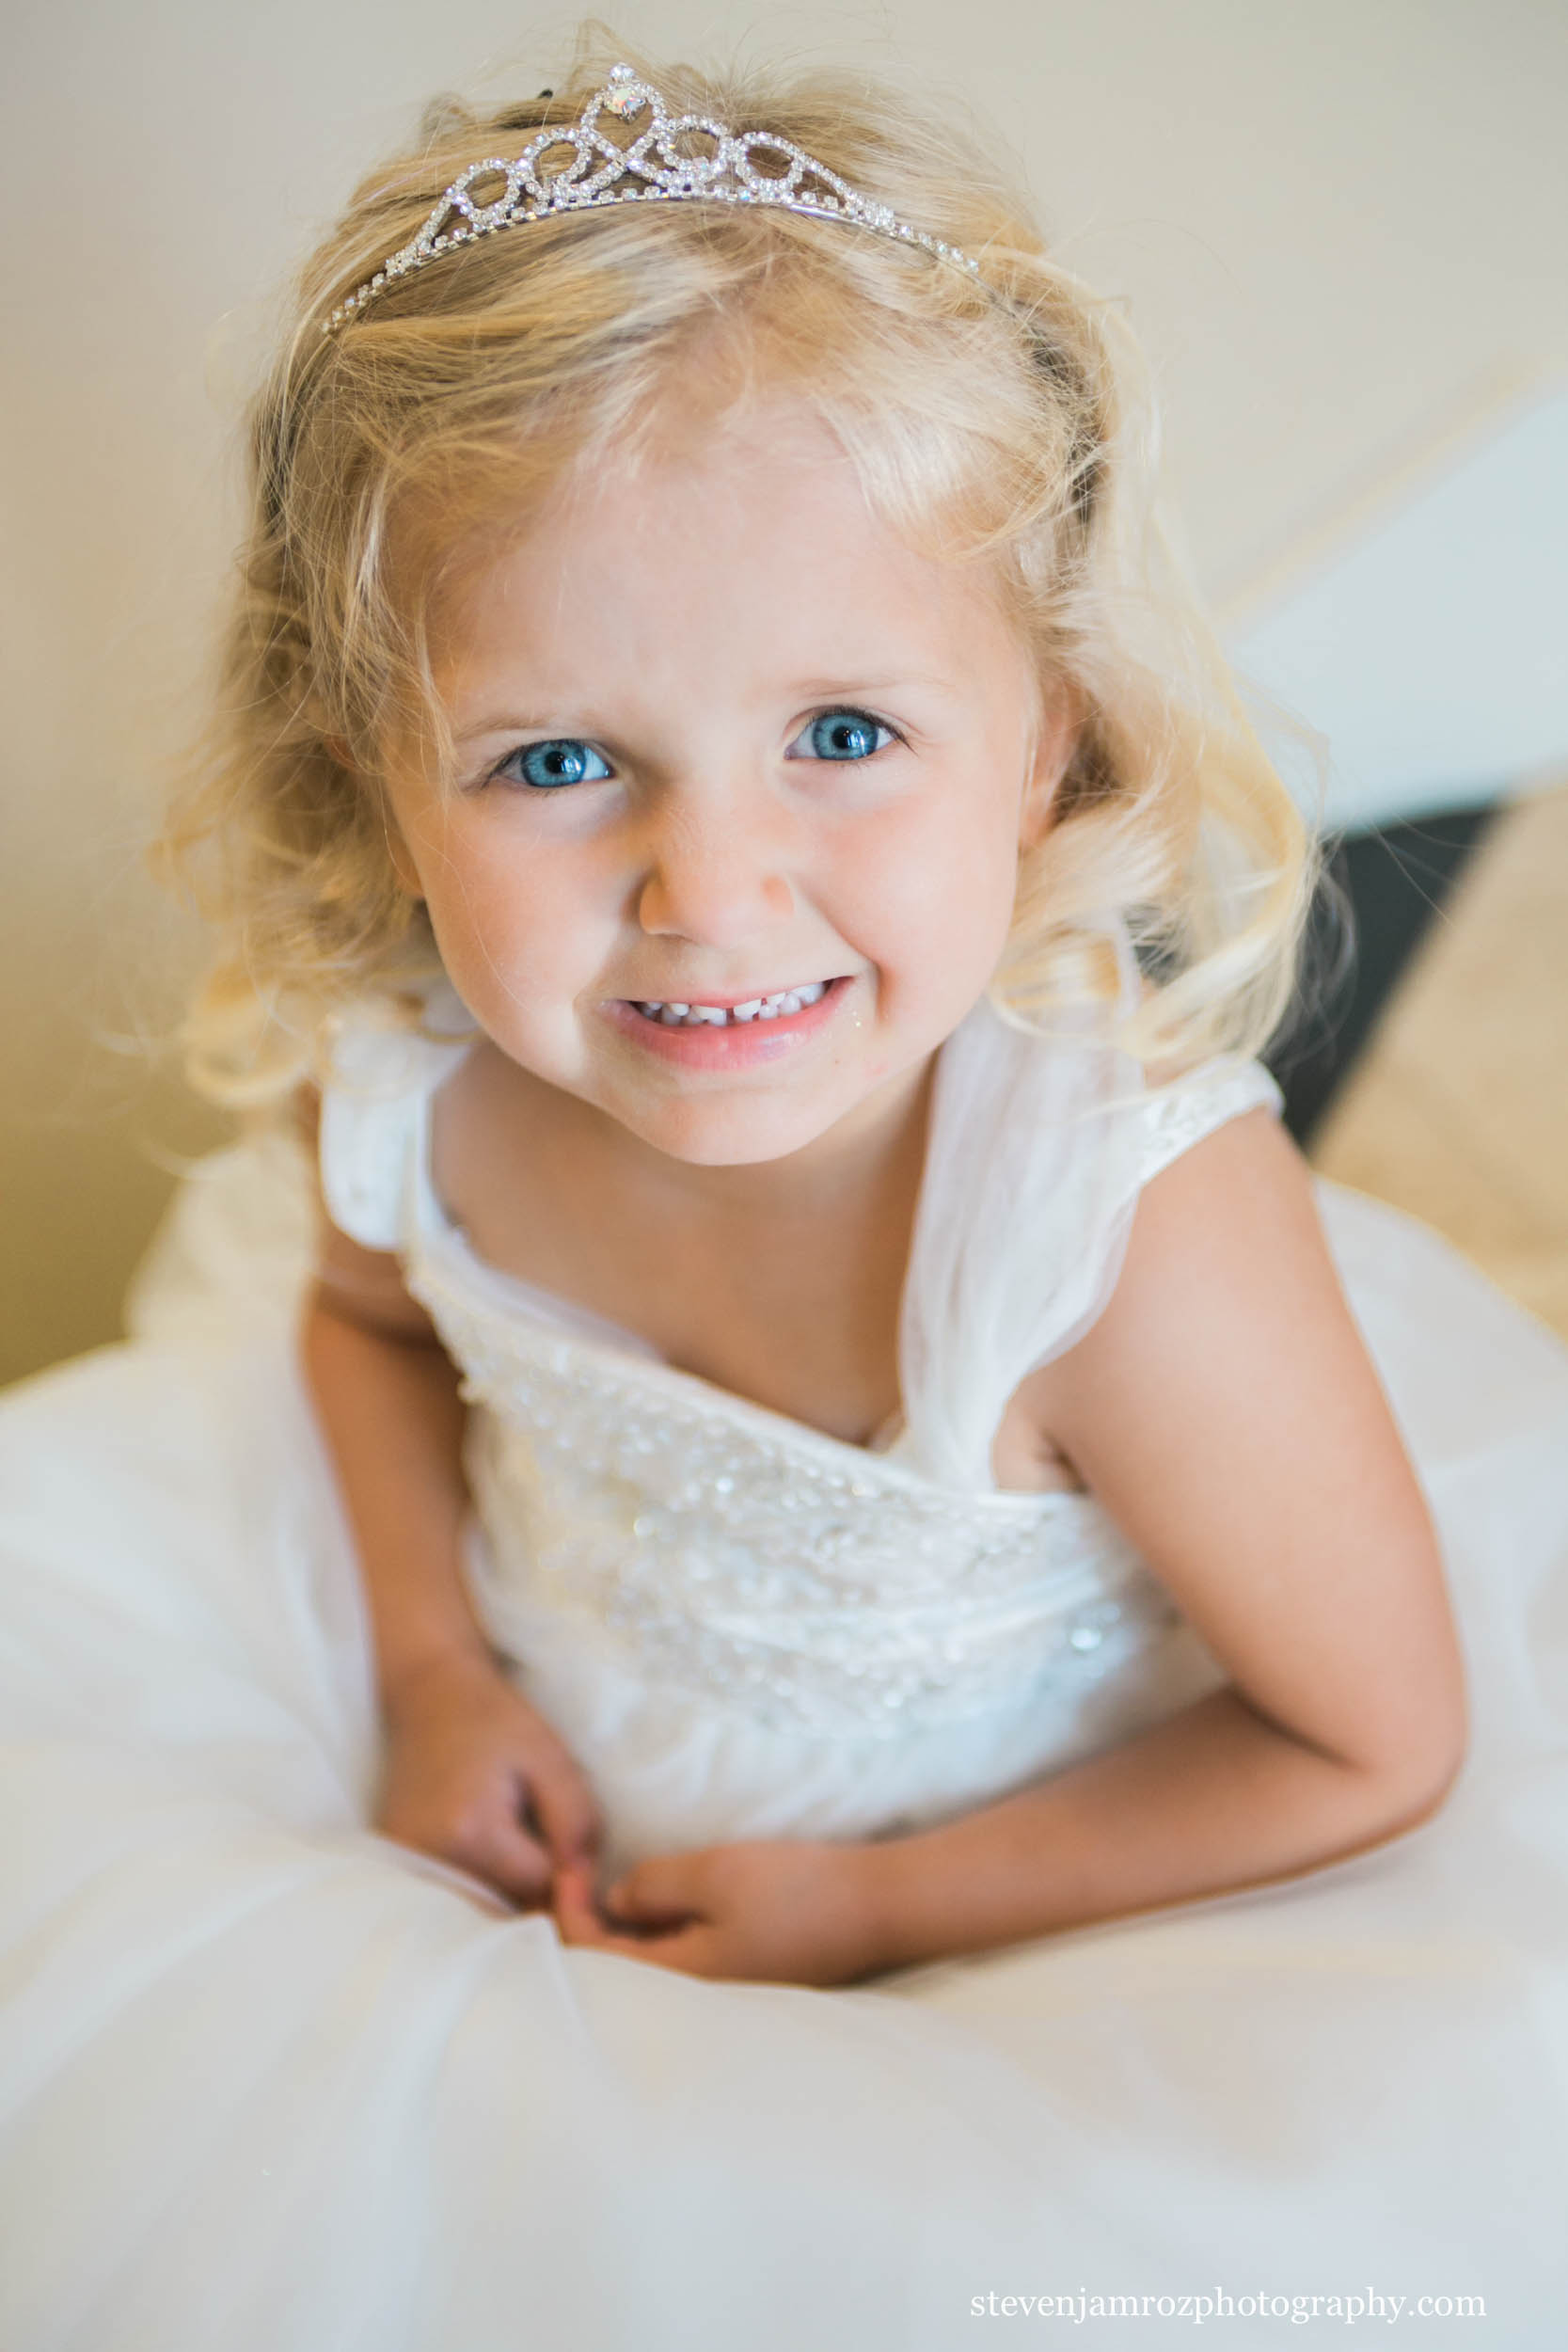 sweet-blonde-girl-portrait-wedding-raleigh-steven-jamroz-photography-0298.jpg